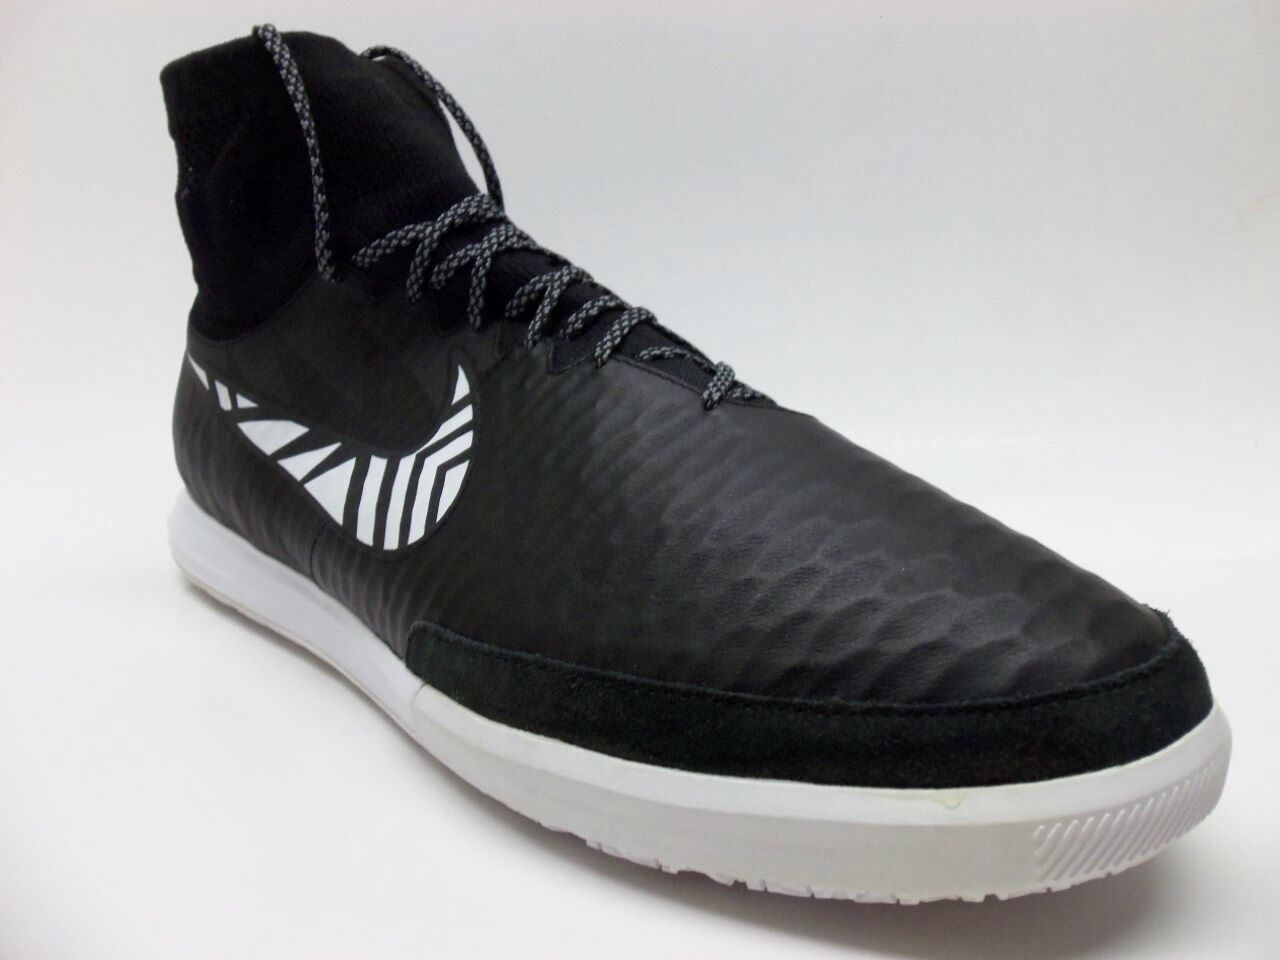 Nike magistax proximo strasse ic -   fest  -  12,5 5794dd